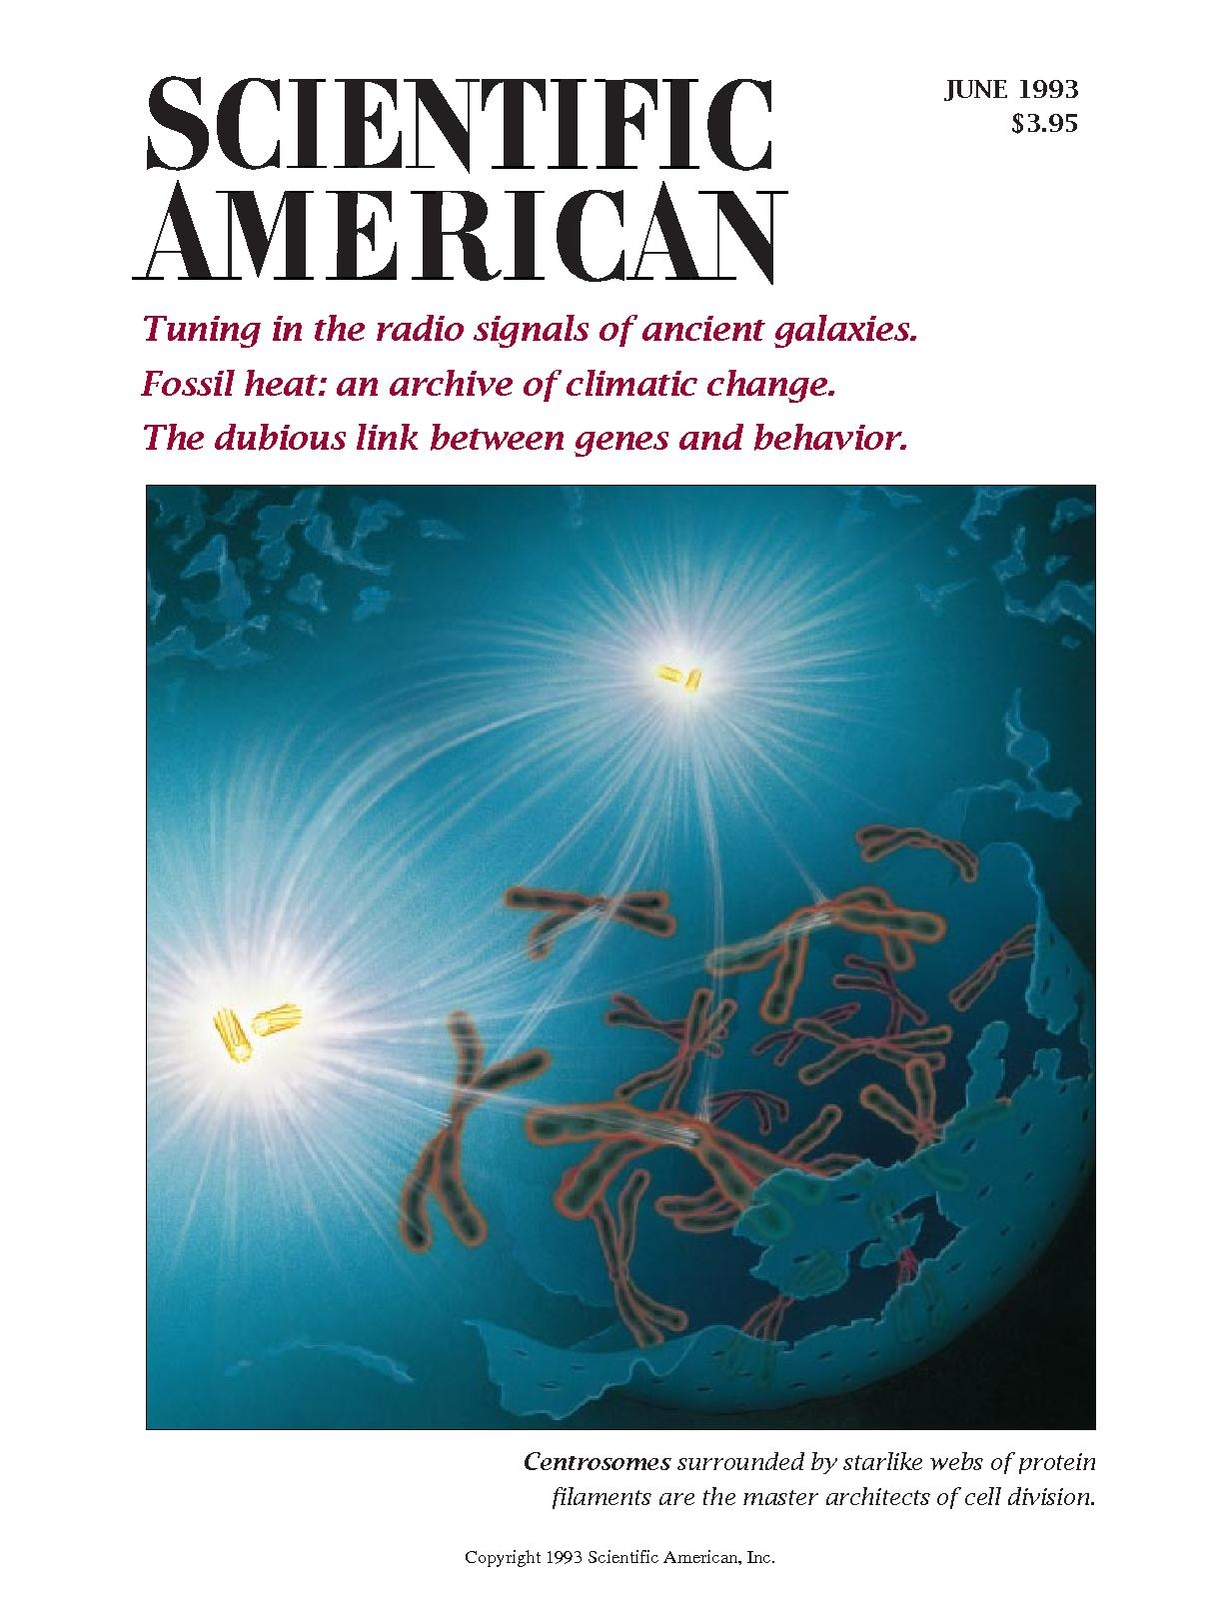 Scientific American - 1993.06 - Tuning in the Radio Signals of Ancient Galaxies.pdf